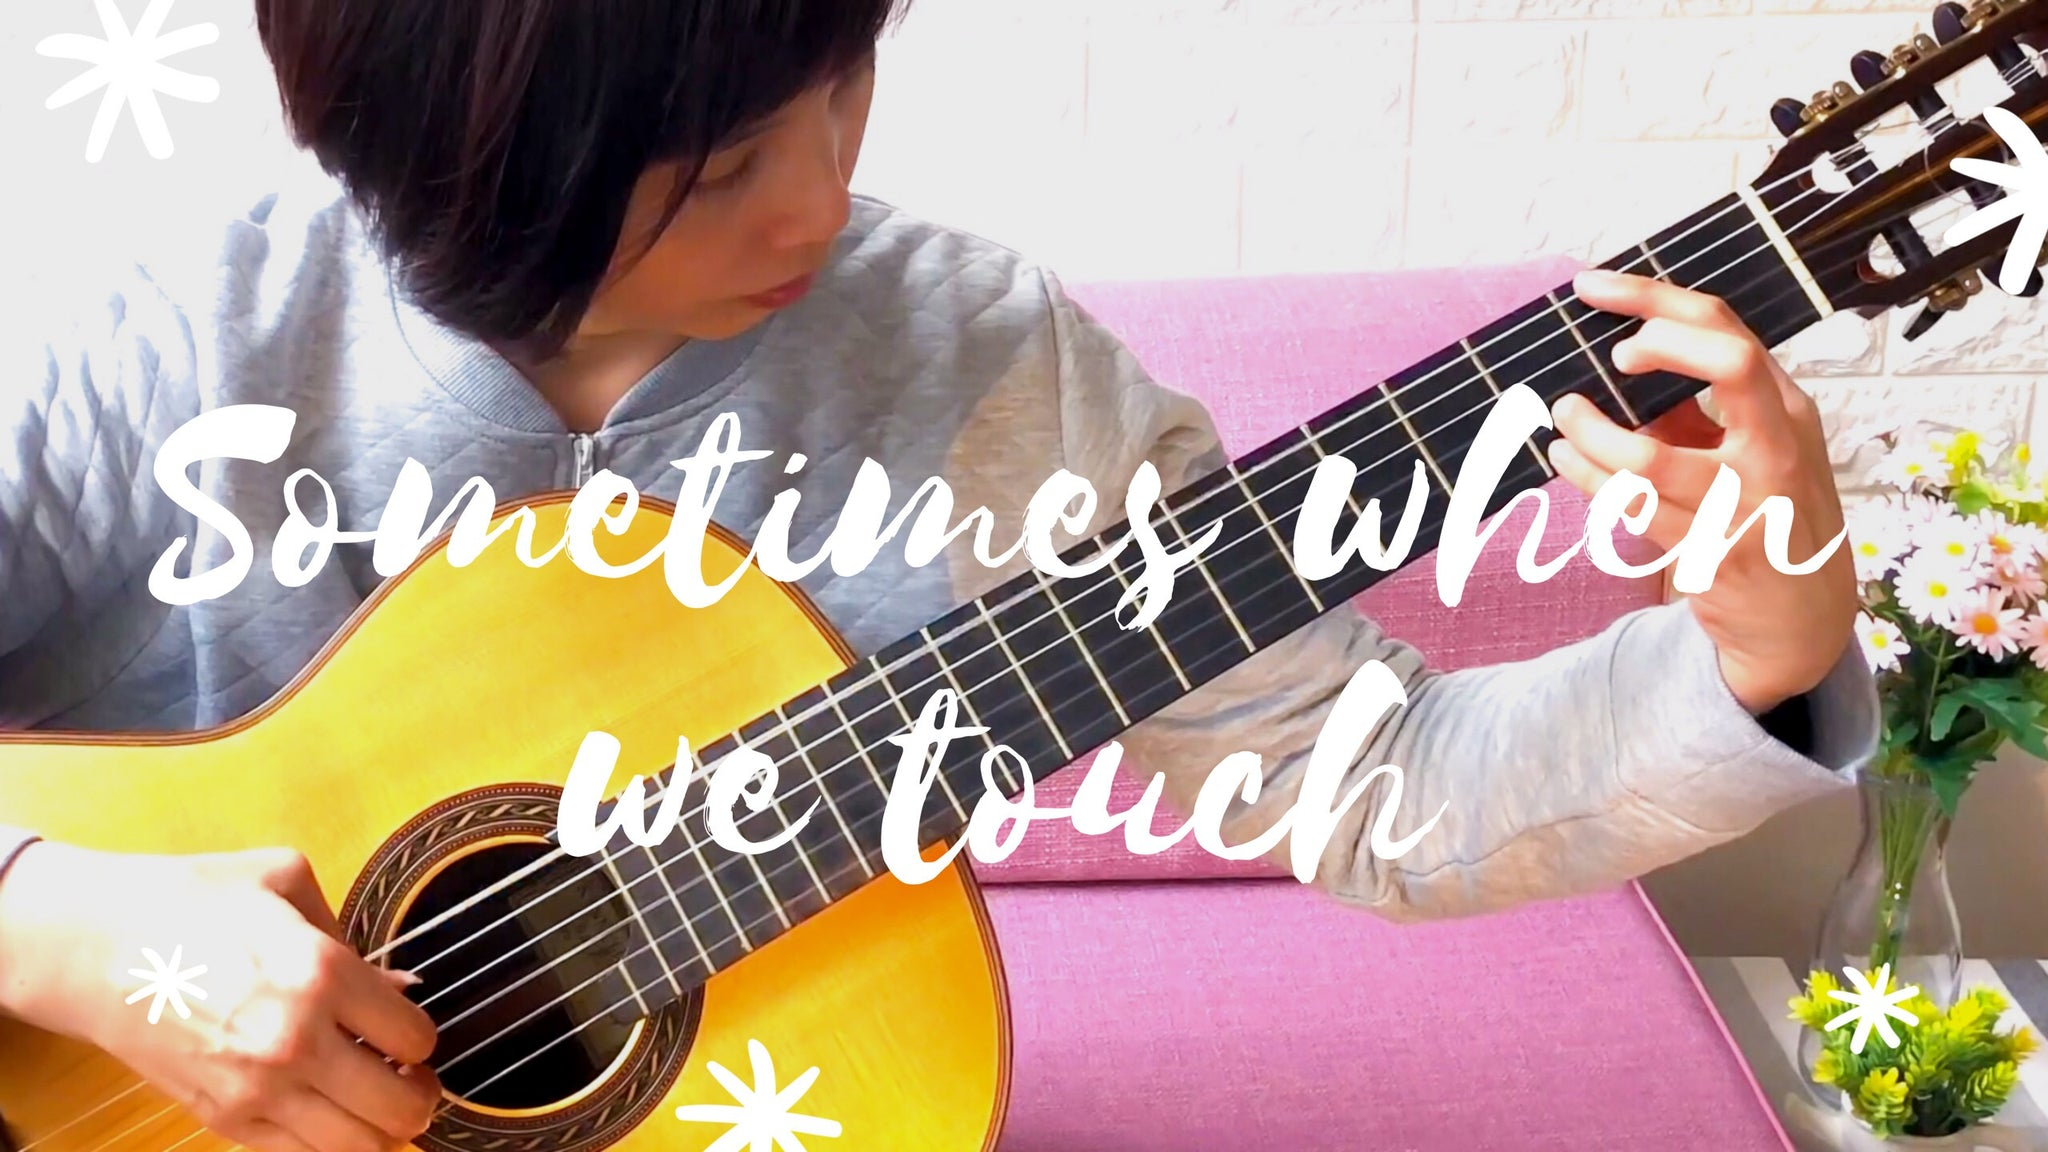 [New Video] Sometimes When We Touch by Dan Hill